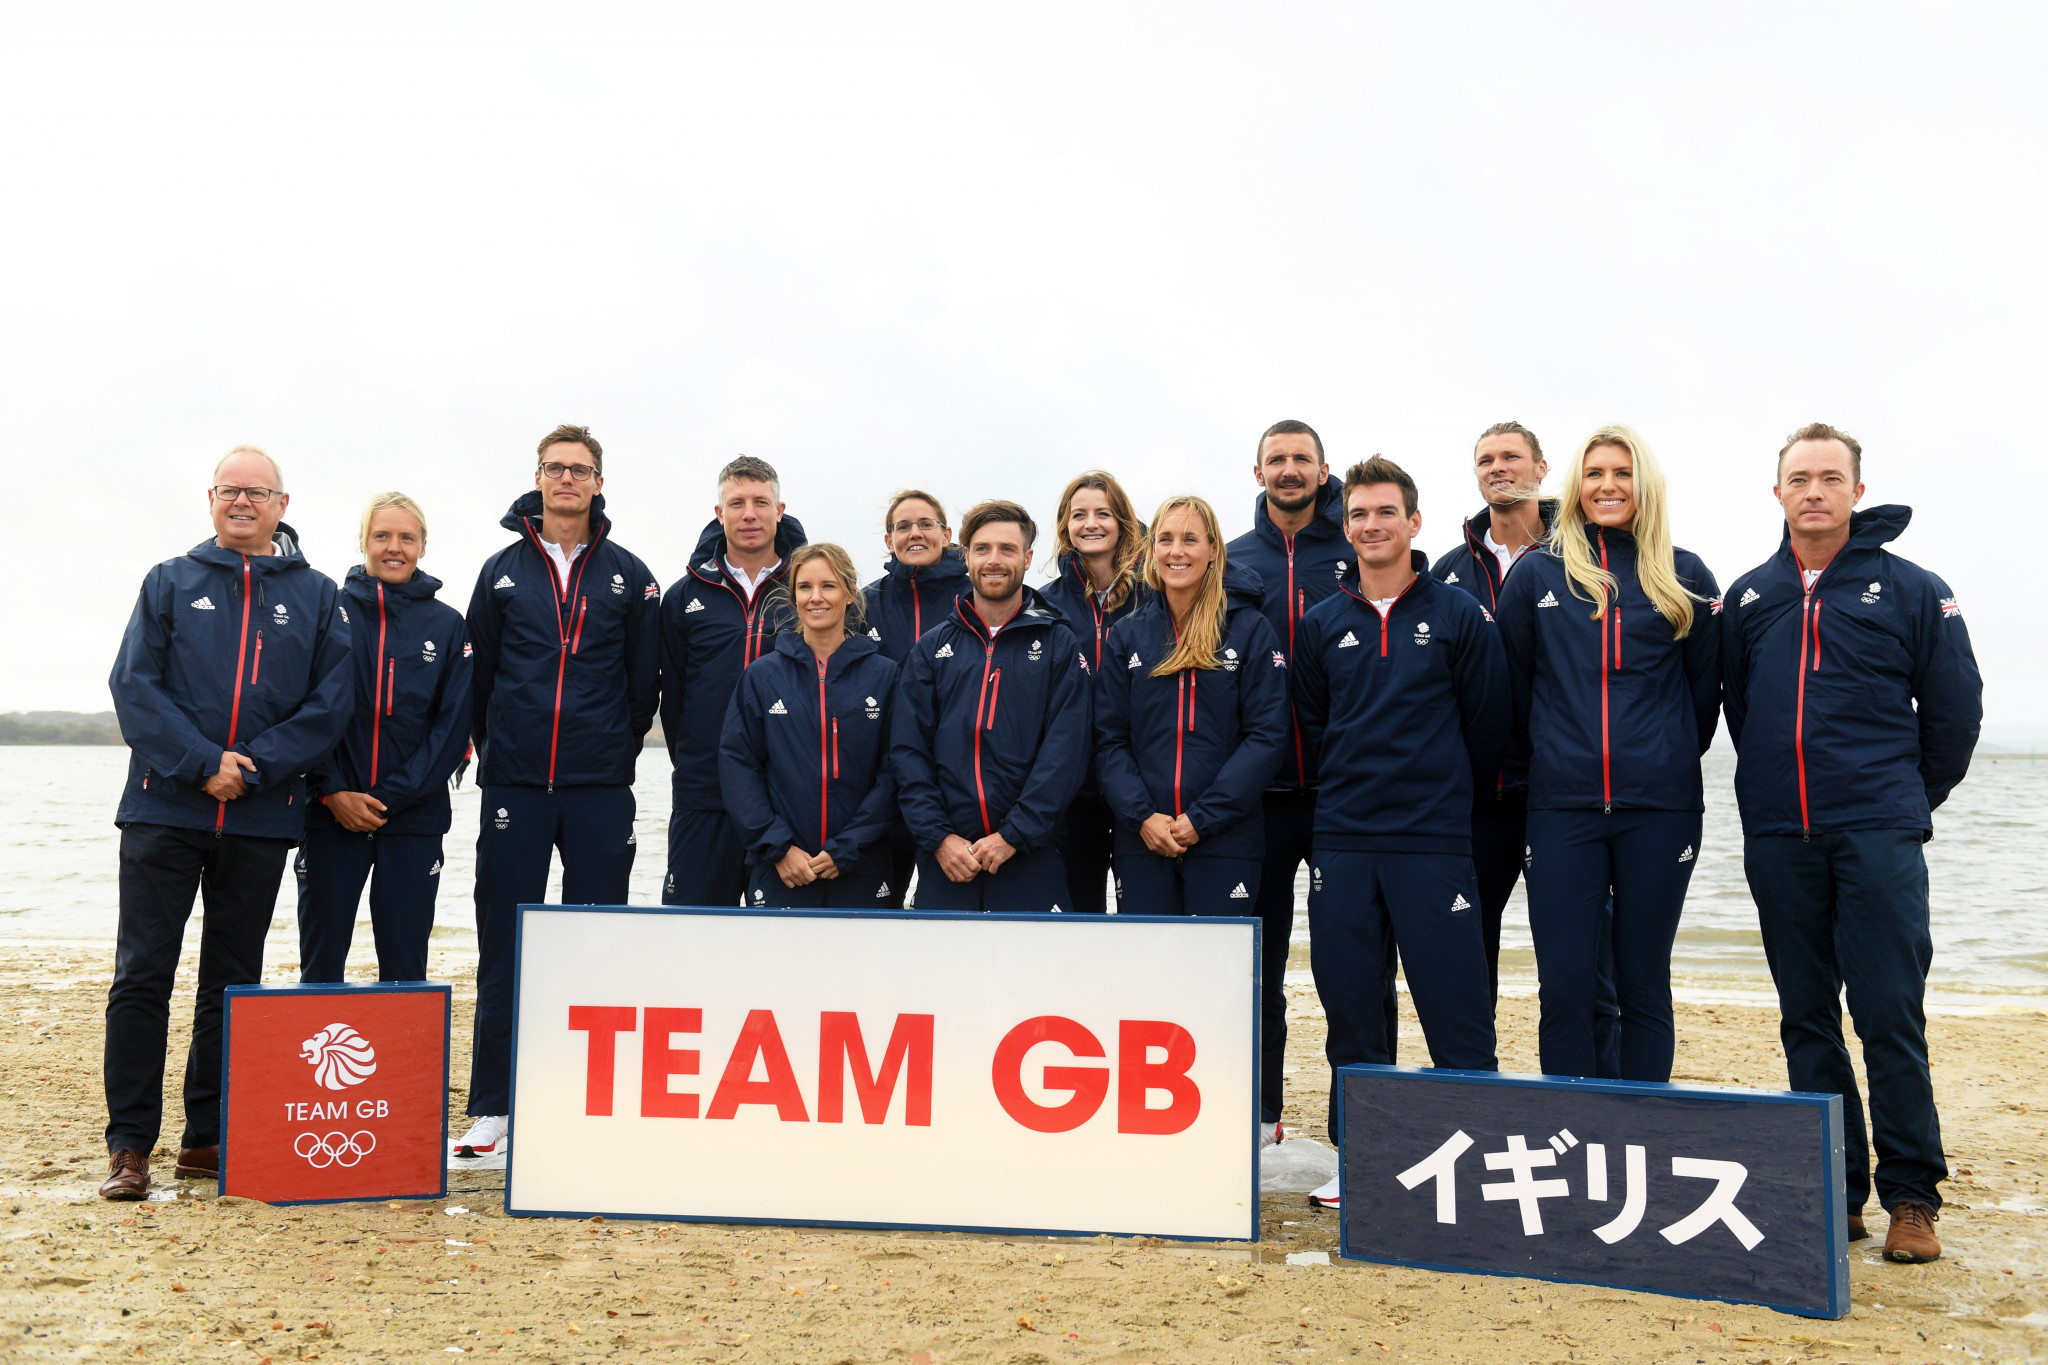 Team GB announced its first 12 sailors for the Tokyo 2020 Games back in October last year ©Getty Images